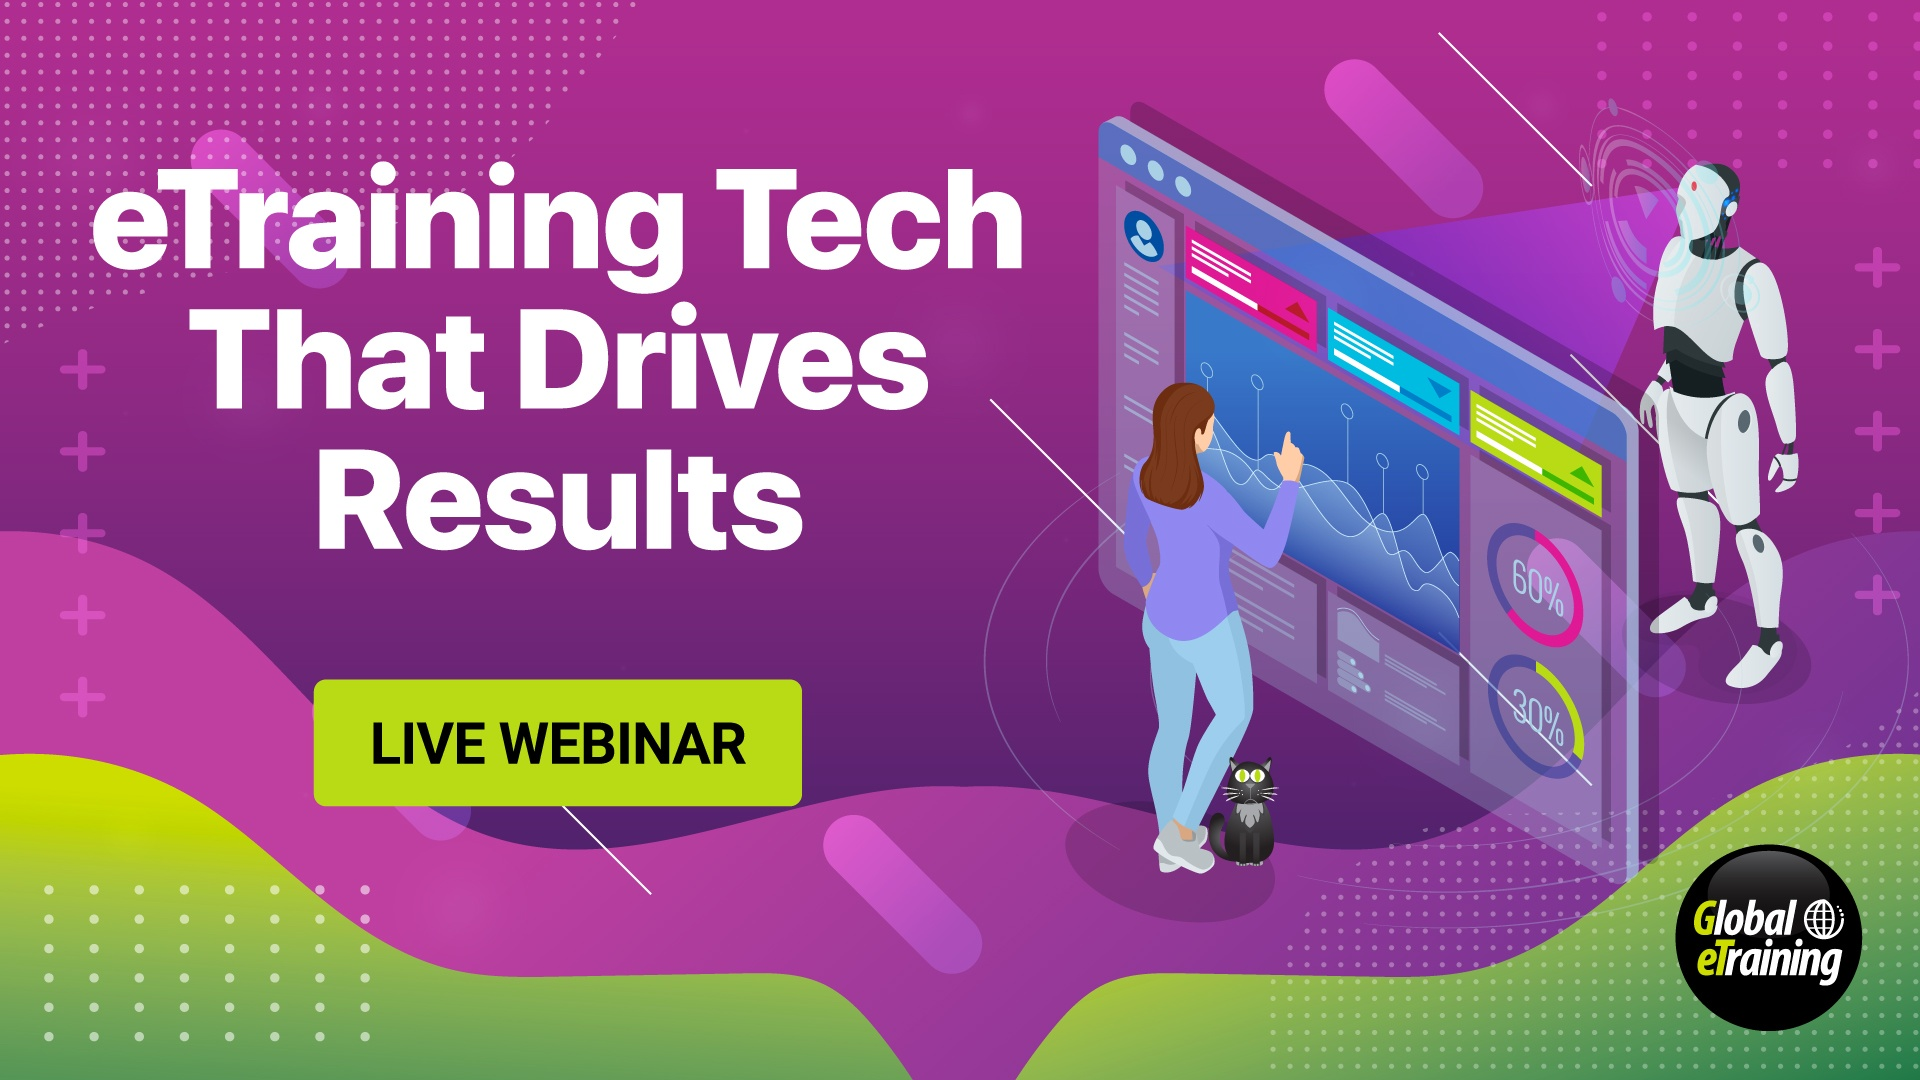 eTraining Tech that Drives Results